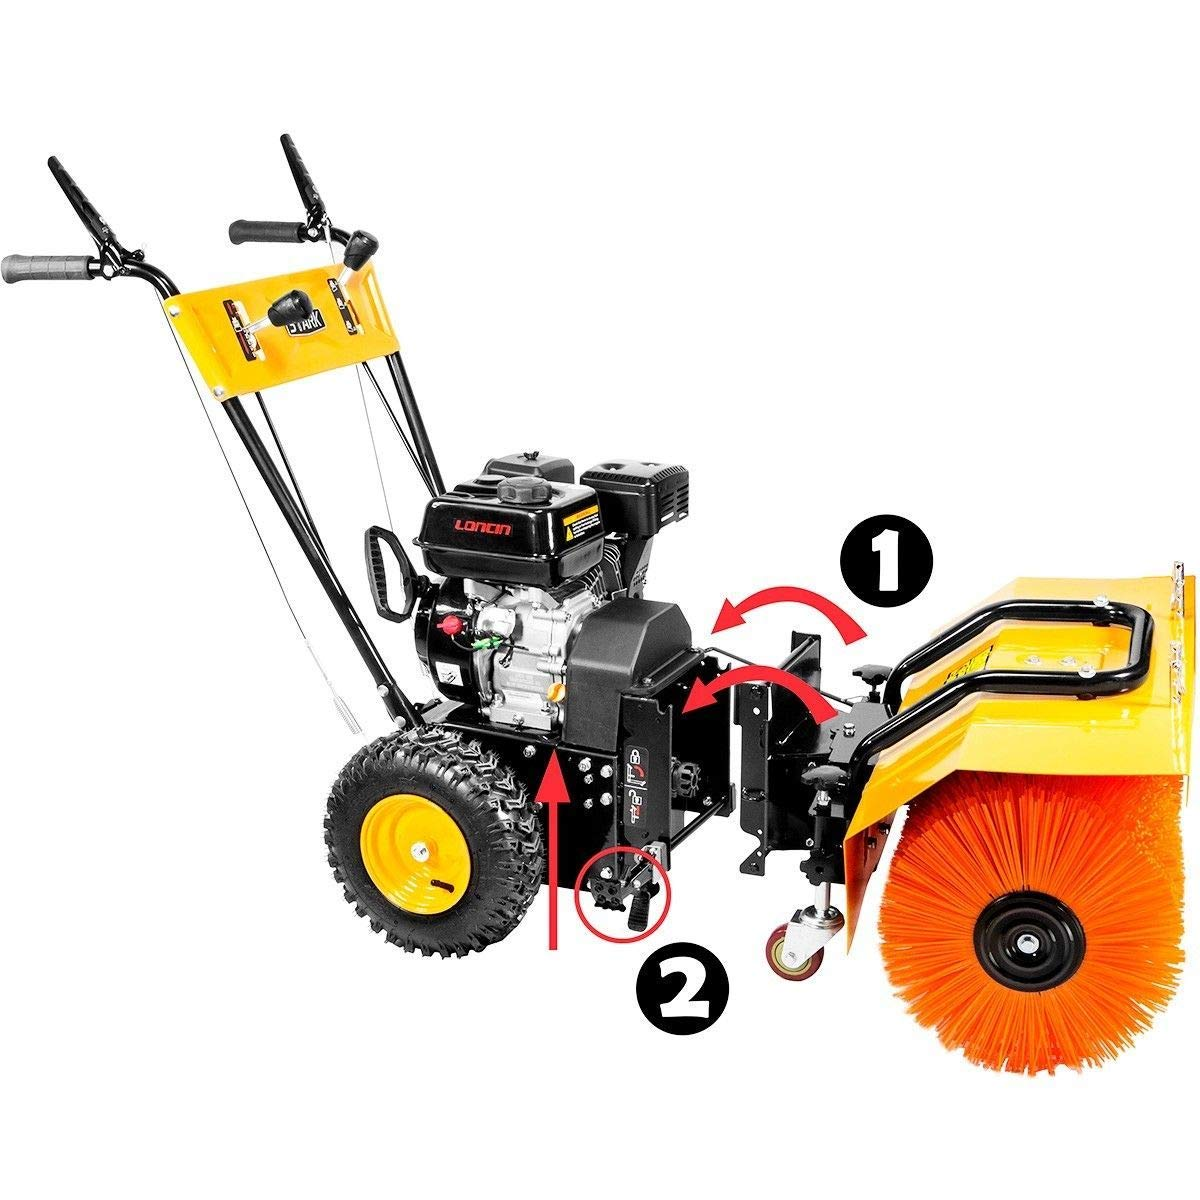 "KCHEX>31"" Walk Behind self propels Snow Sweeper Brush 24"" ice Blade Blower Gas Engine>2 in 1 Multi-Function Sweeper/Blower Perfect for homeowners who Need a Medium Size Snow Sweeper"